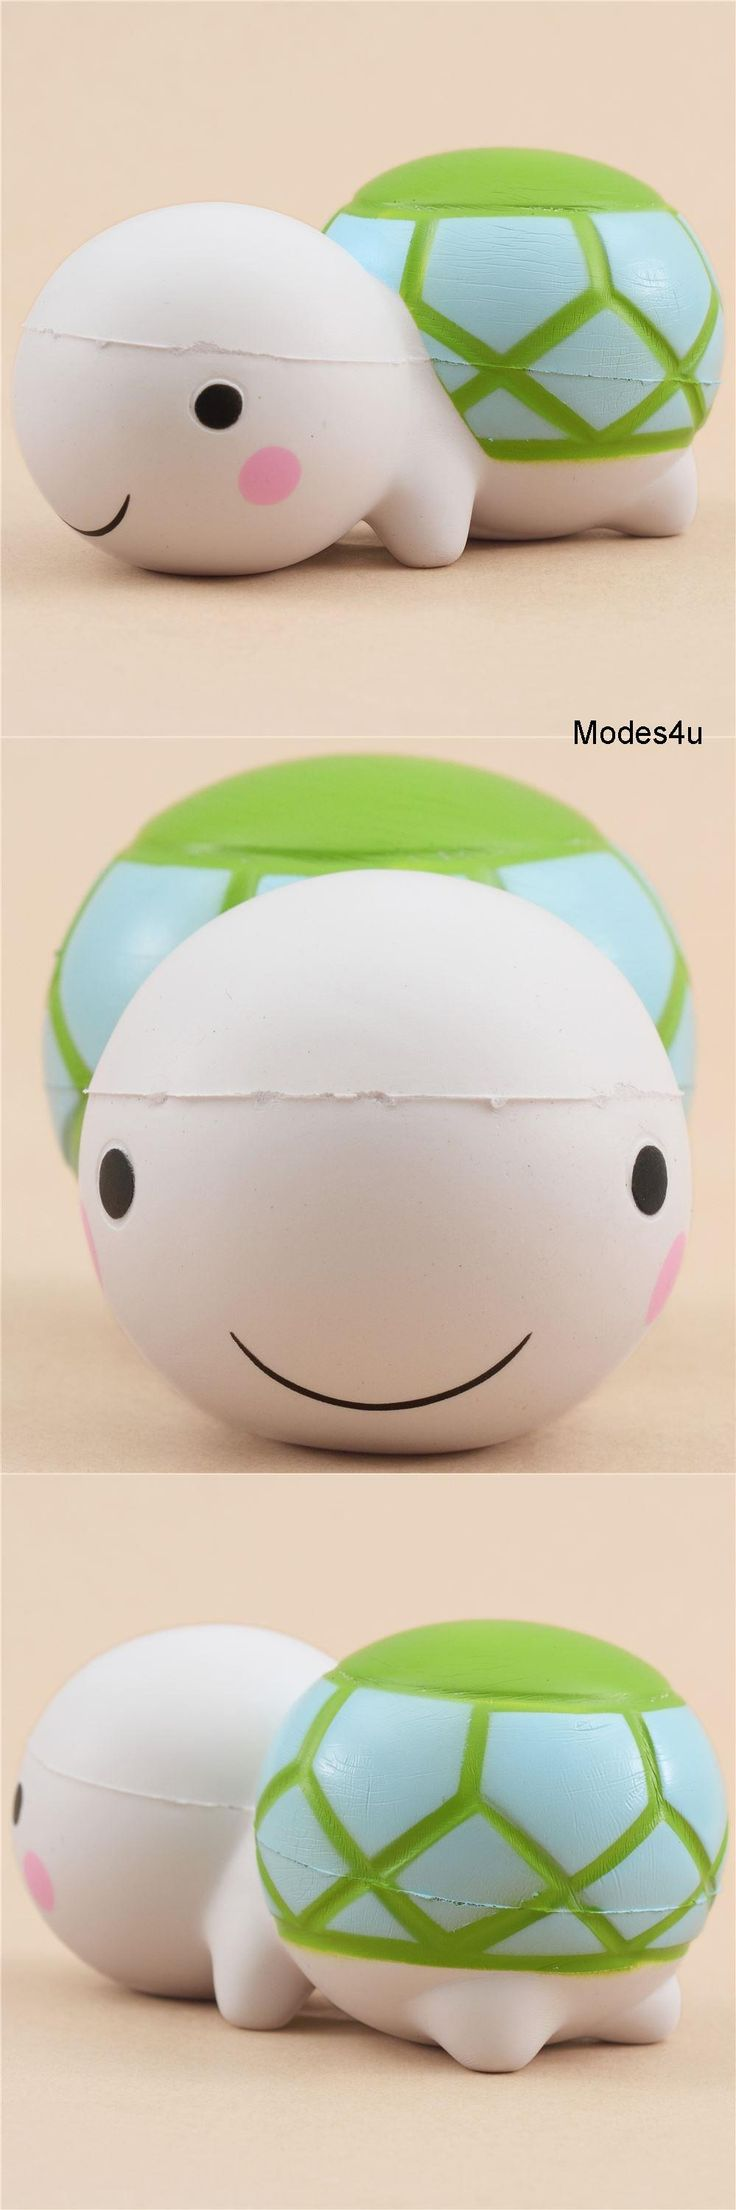 May Kawaii Squishy And Slime : 1698 best Kawaii images on Pinterest Random cute things, Slime and Squishies